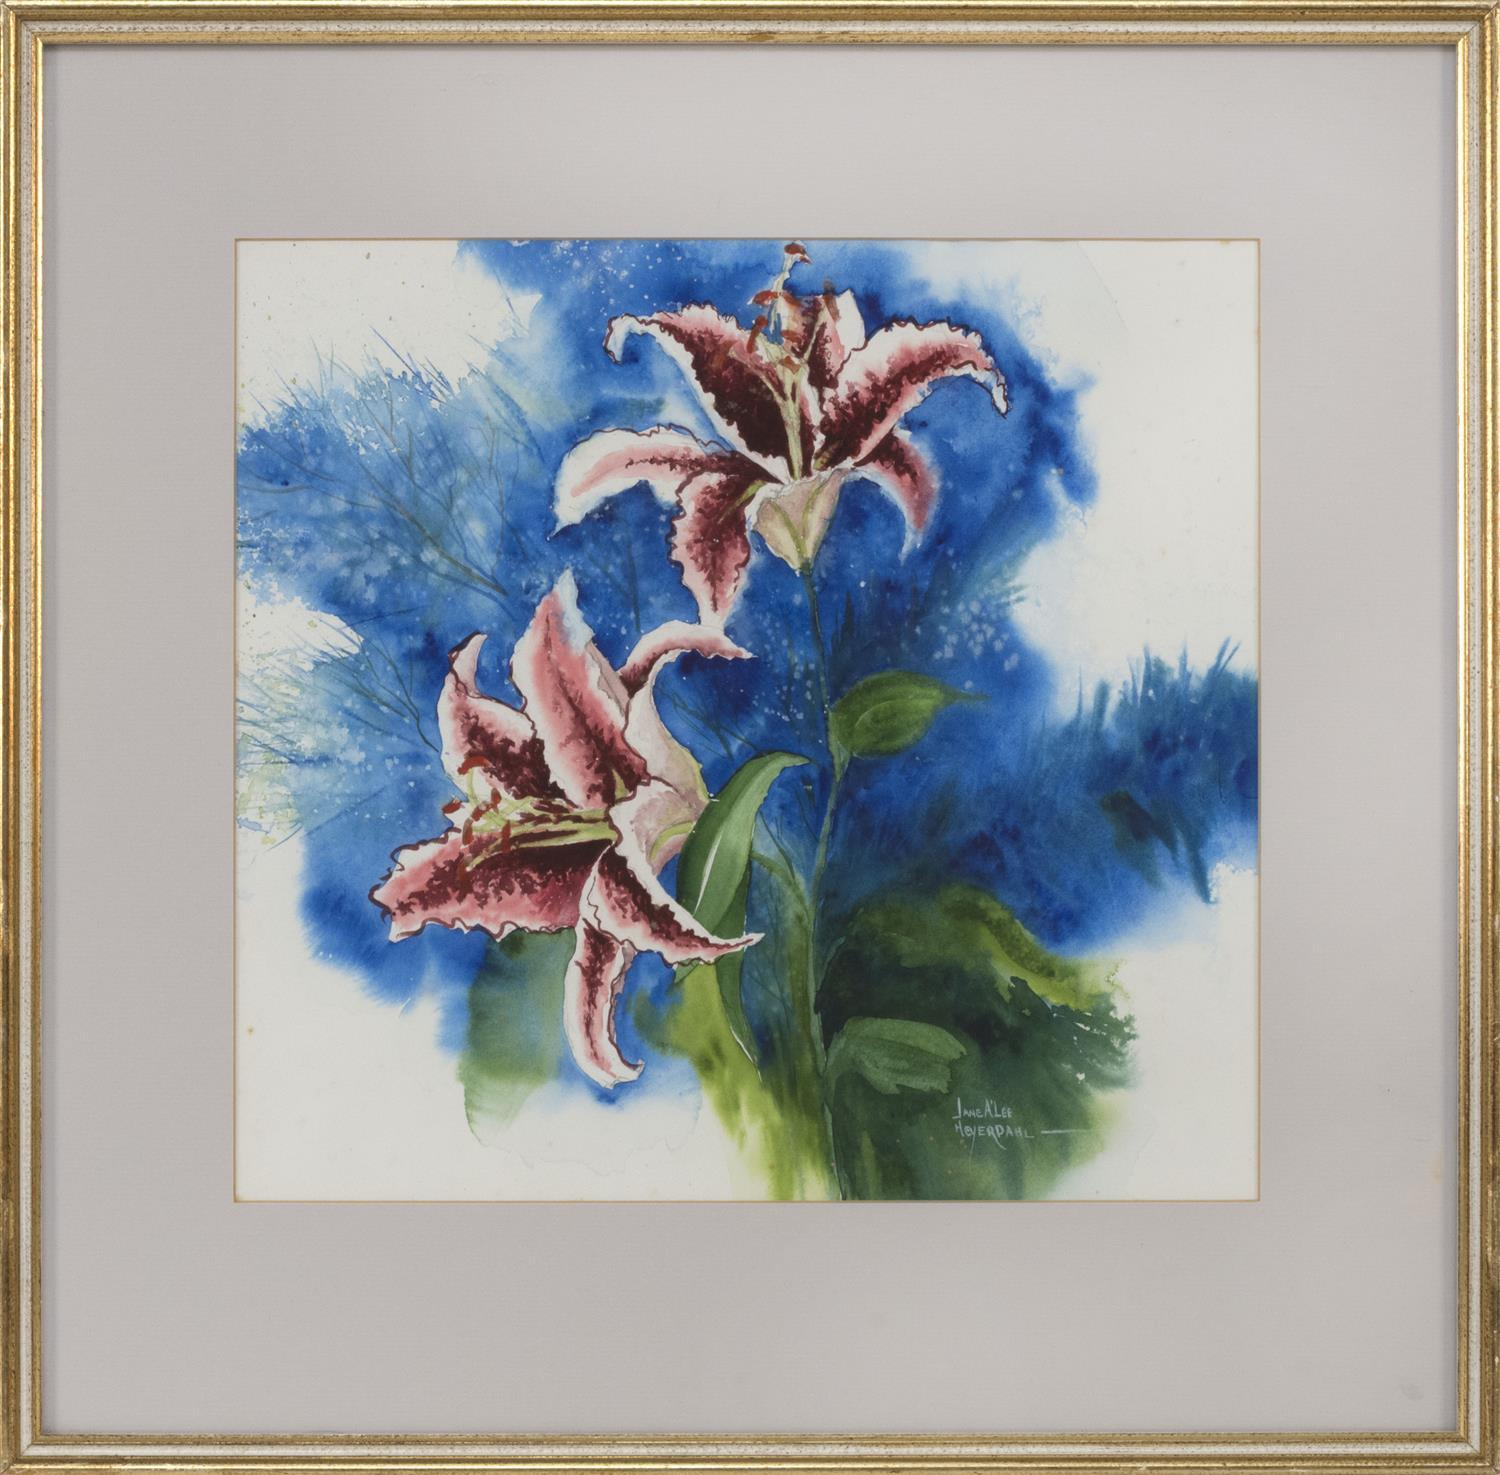 "JANE A'LEE HEYERDAHL, America, Contemporary, Two pink tiger lilies., Watercolor, 14"" x 15"". Framed 21.5"" x 22""."